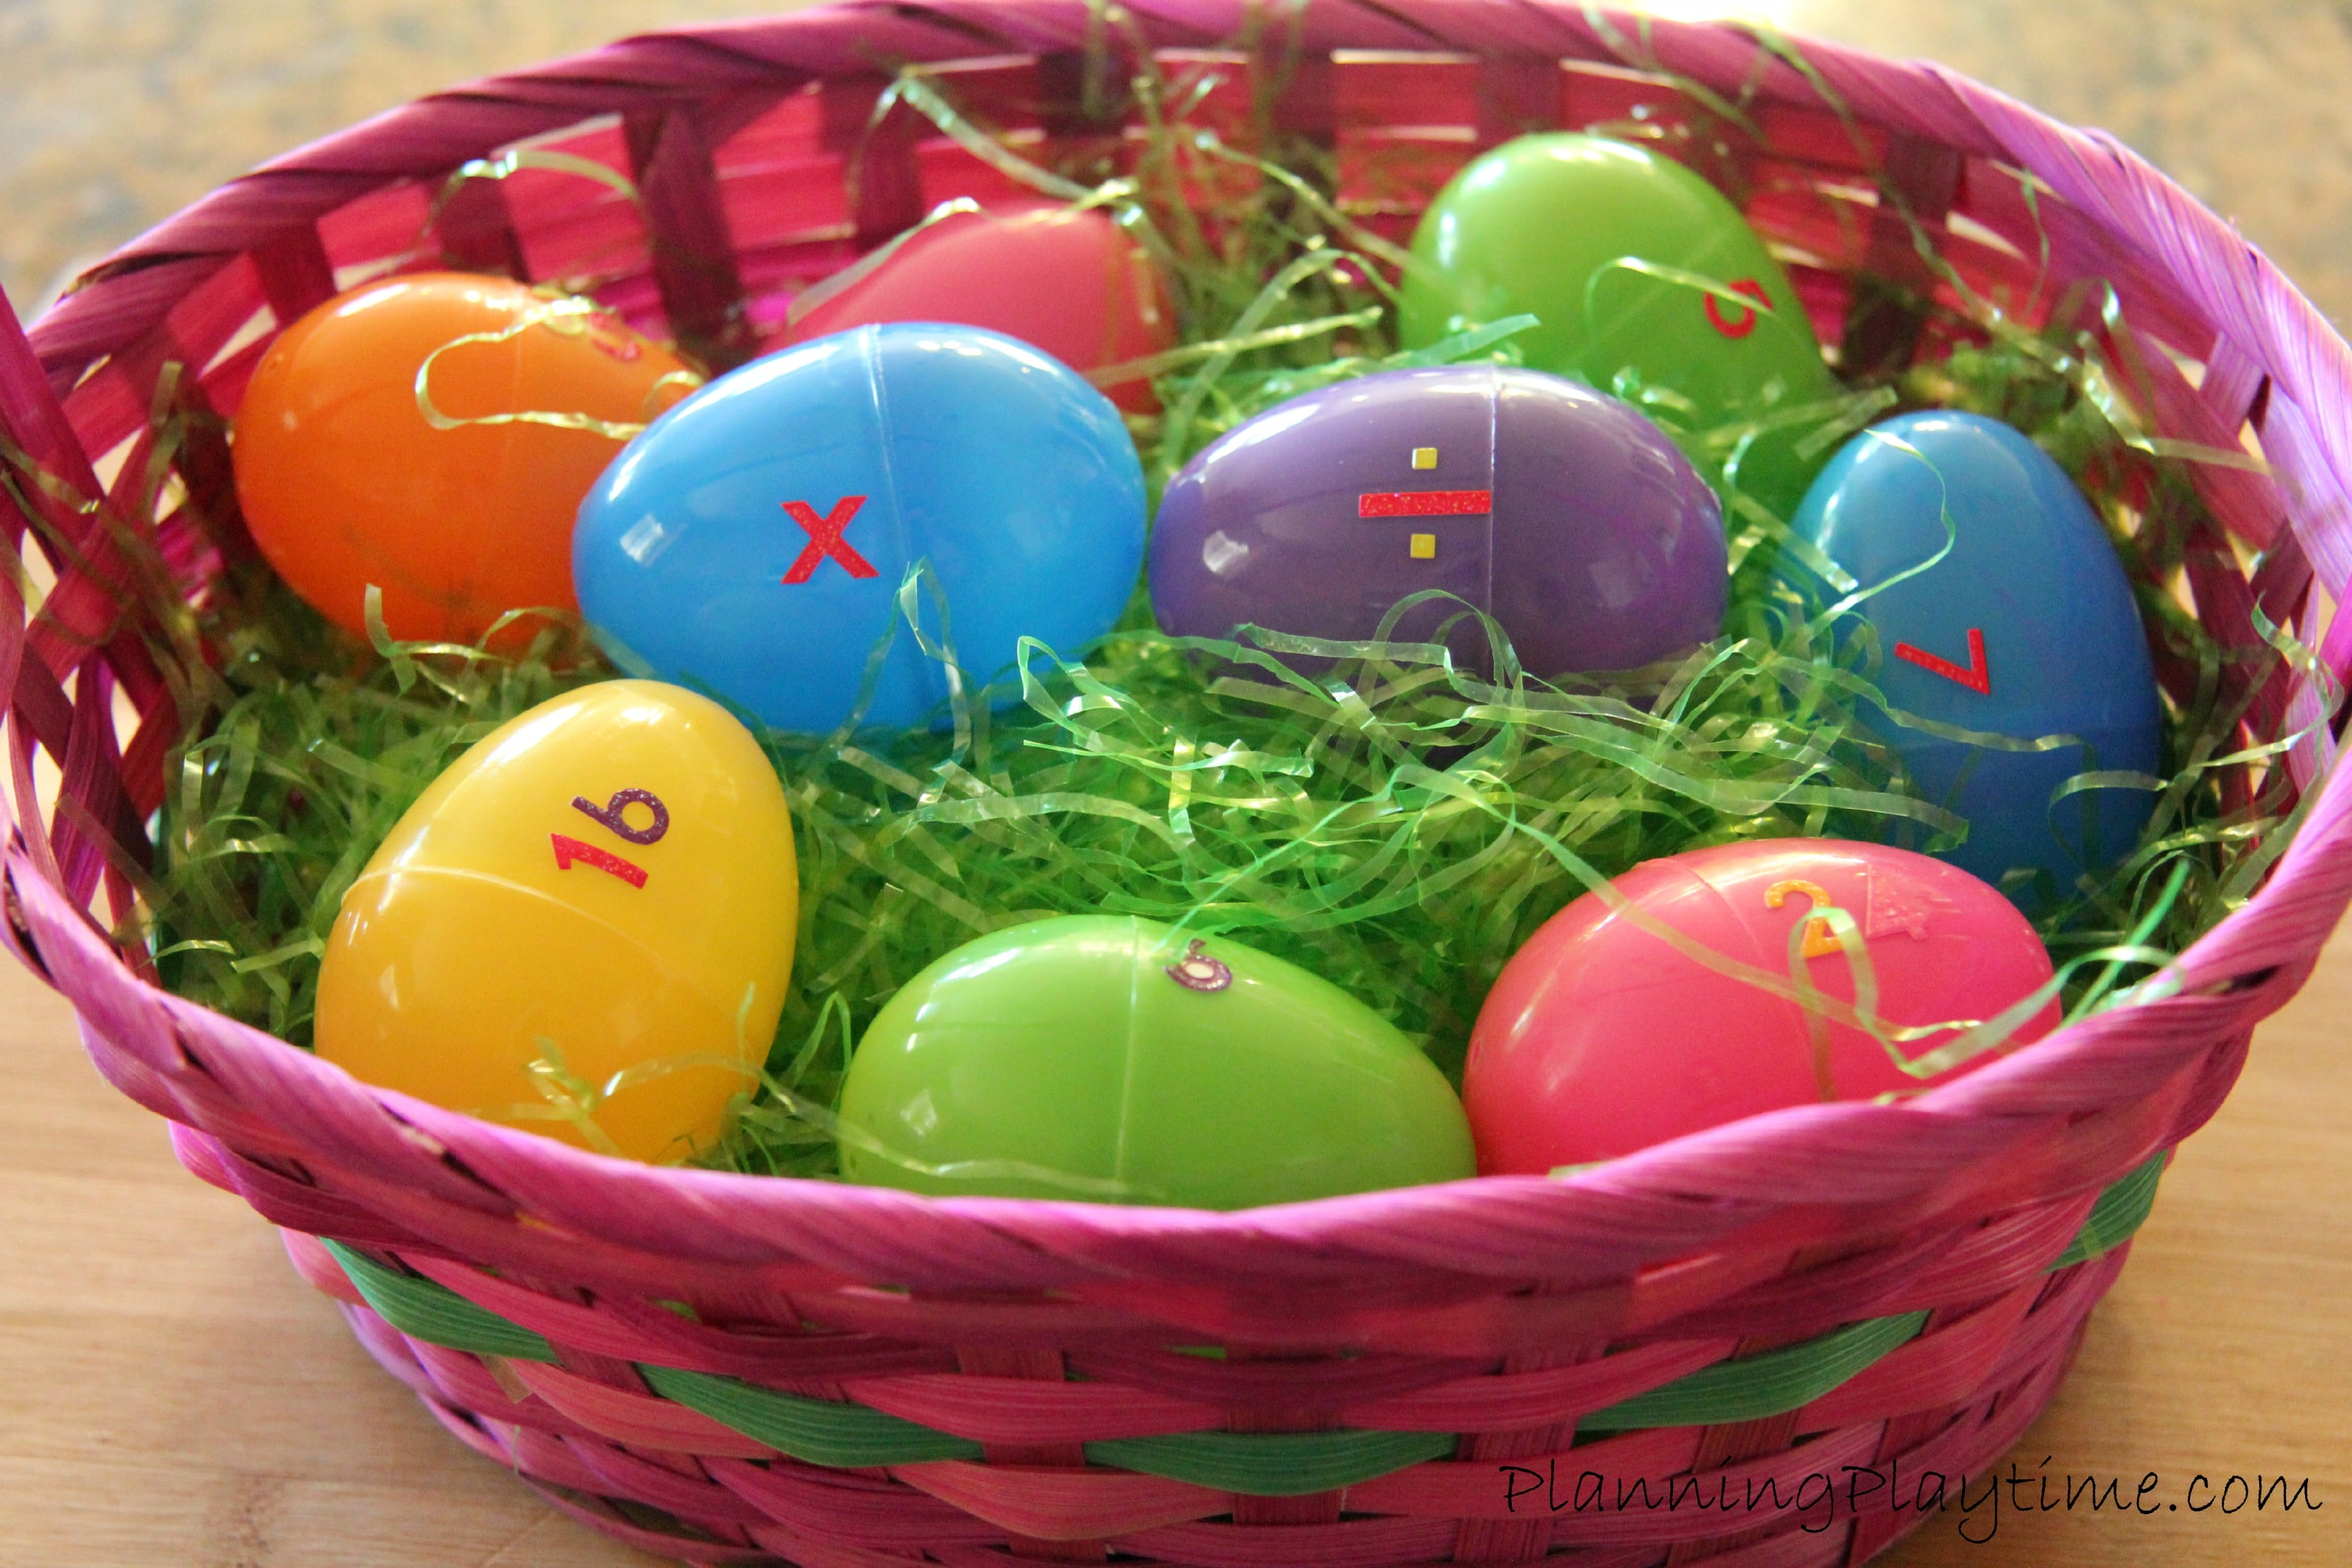 10 Educational Activities Using Plastic Easter Eggs - Planning Playtime